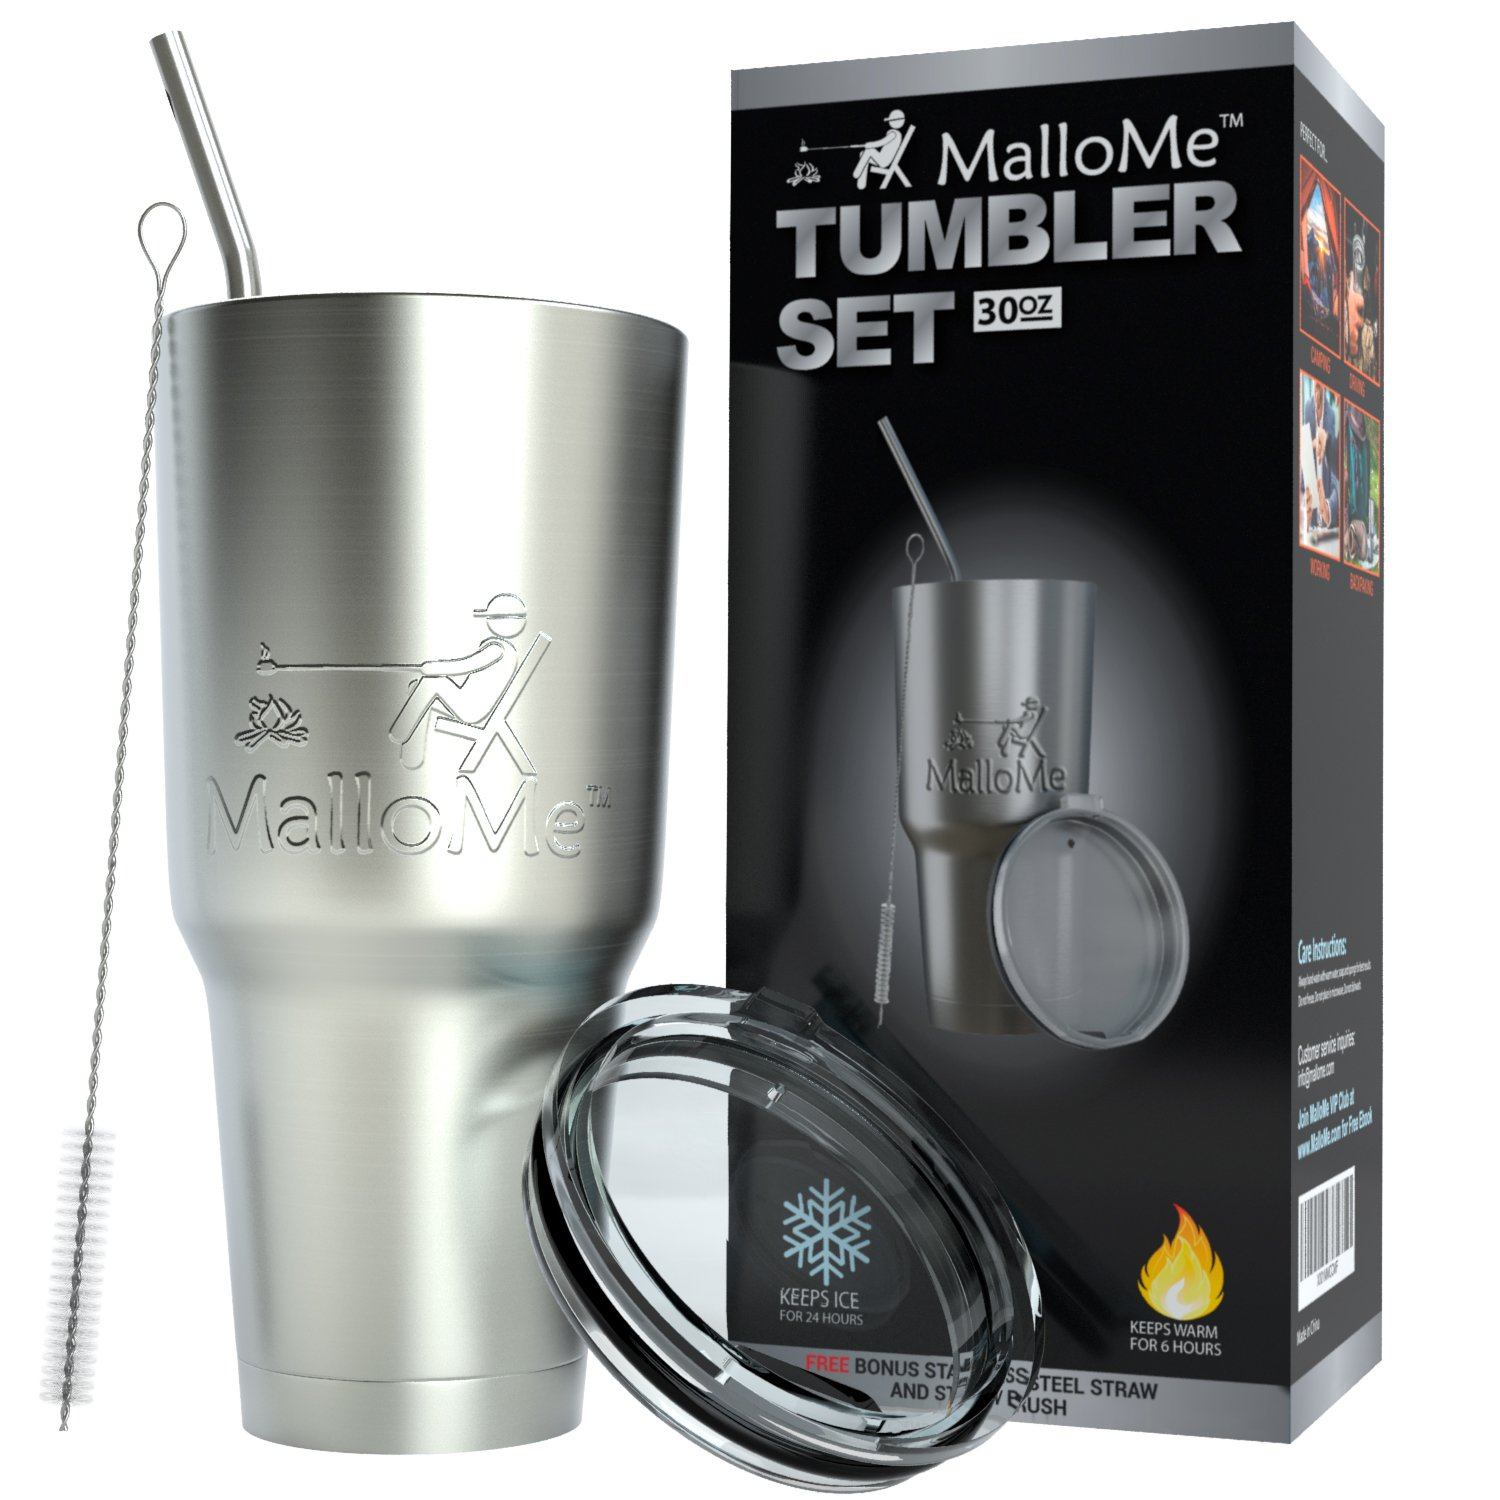 MalloMe Tumbler 30 oz. Double Wall Stainless Steel Vacuum Insulated - Travel Mug [Crystal Clear Lid] Water Coffee Cup [Straw Included] For Home,Office,School - Works Great for Ice Drink, Hot Beverage